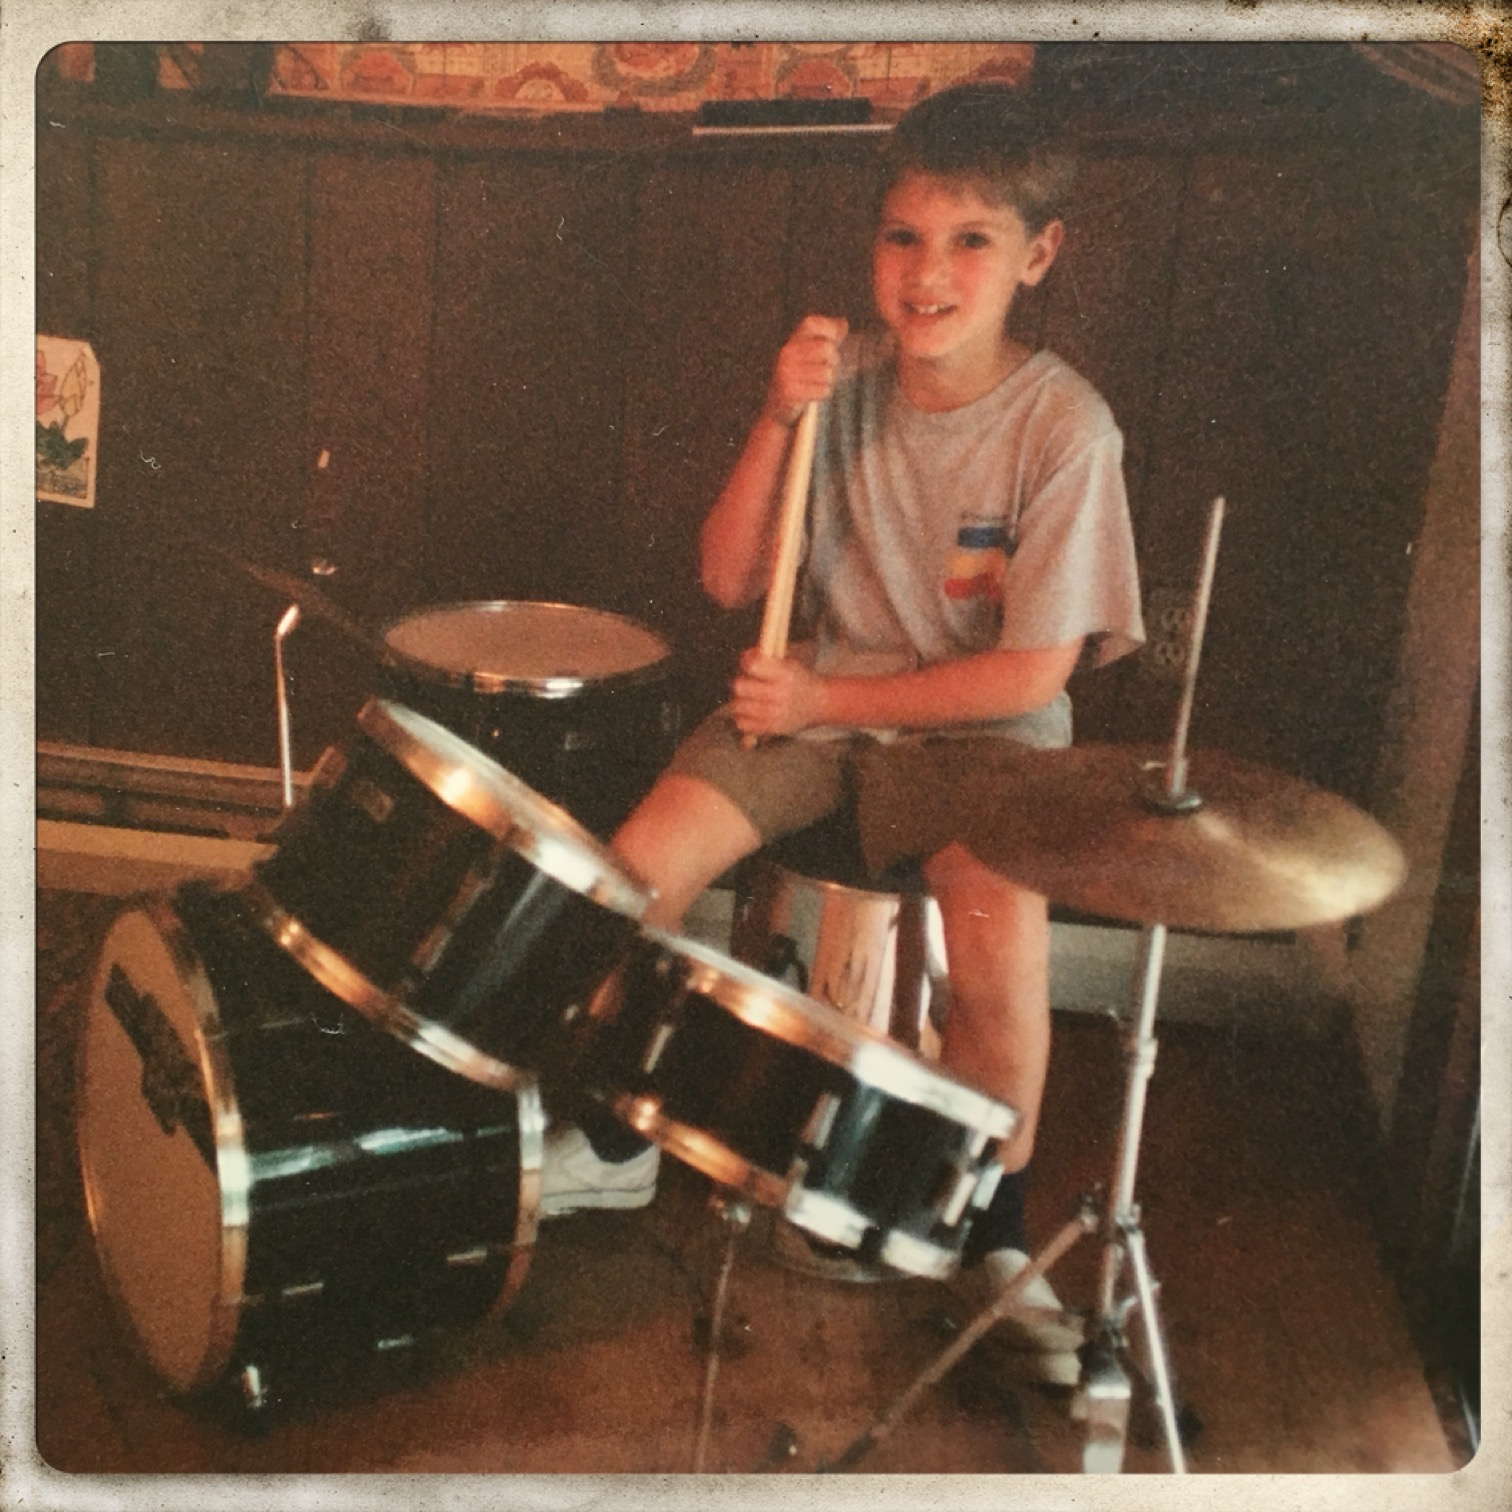 My first drum set - 6 years old!